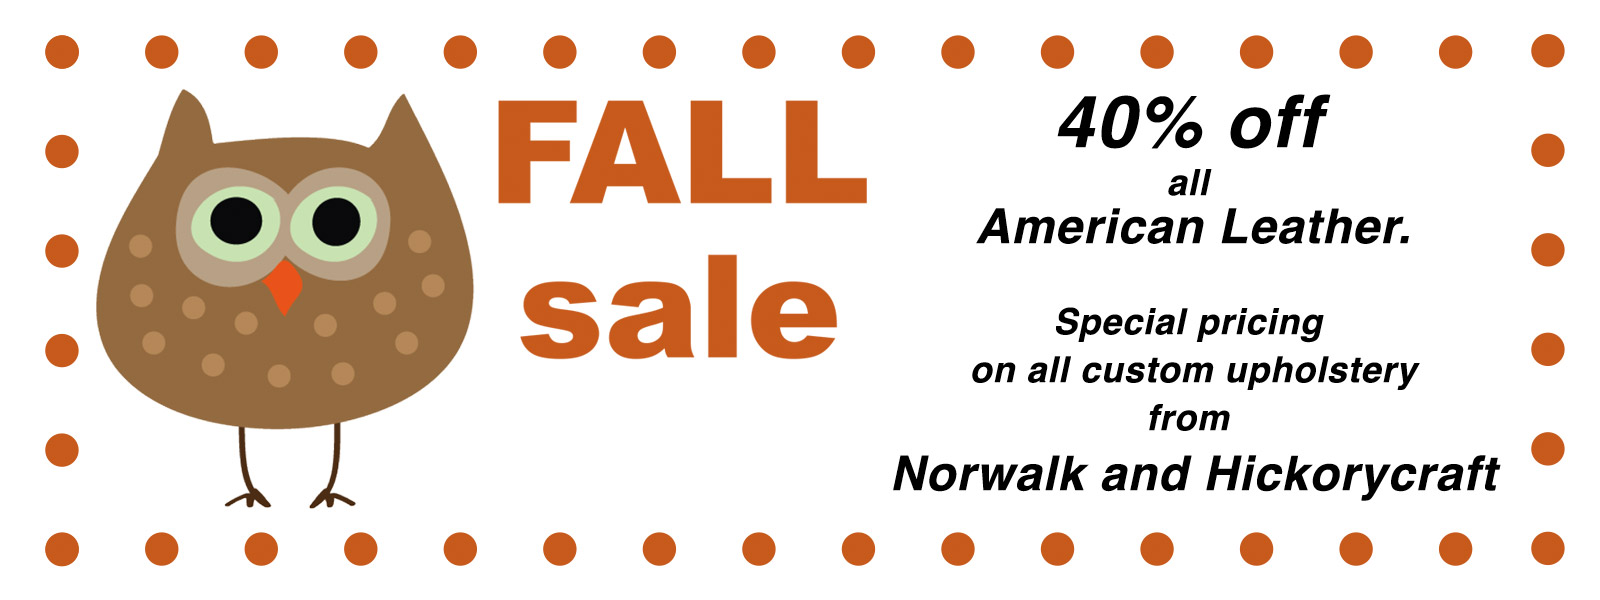 Fall Sale at Sofas & Chairs